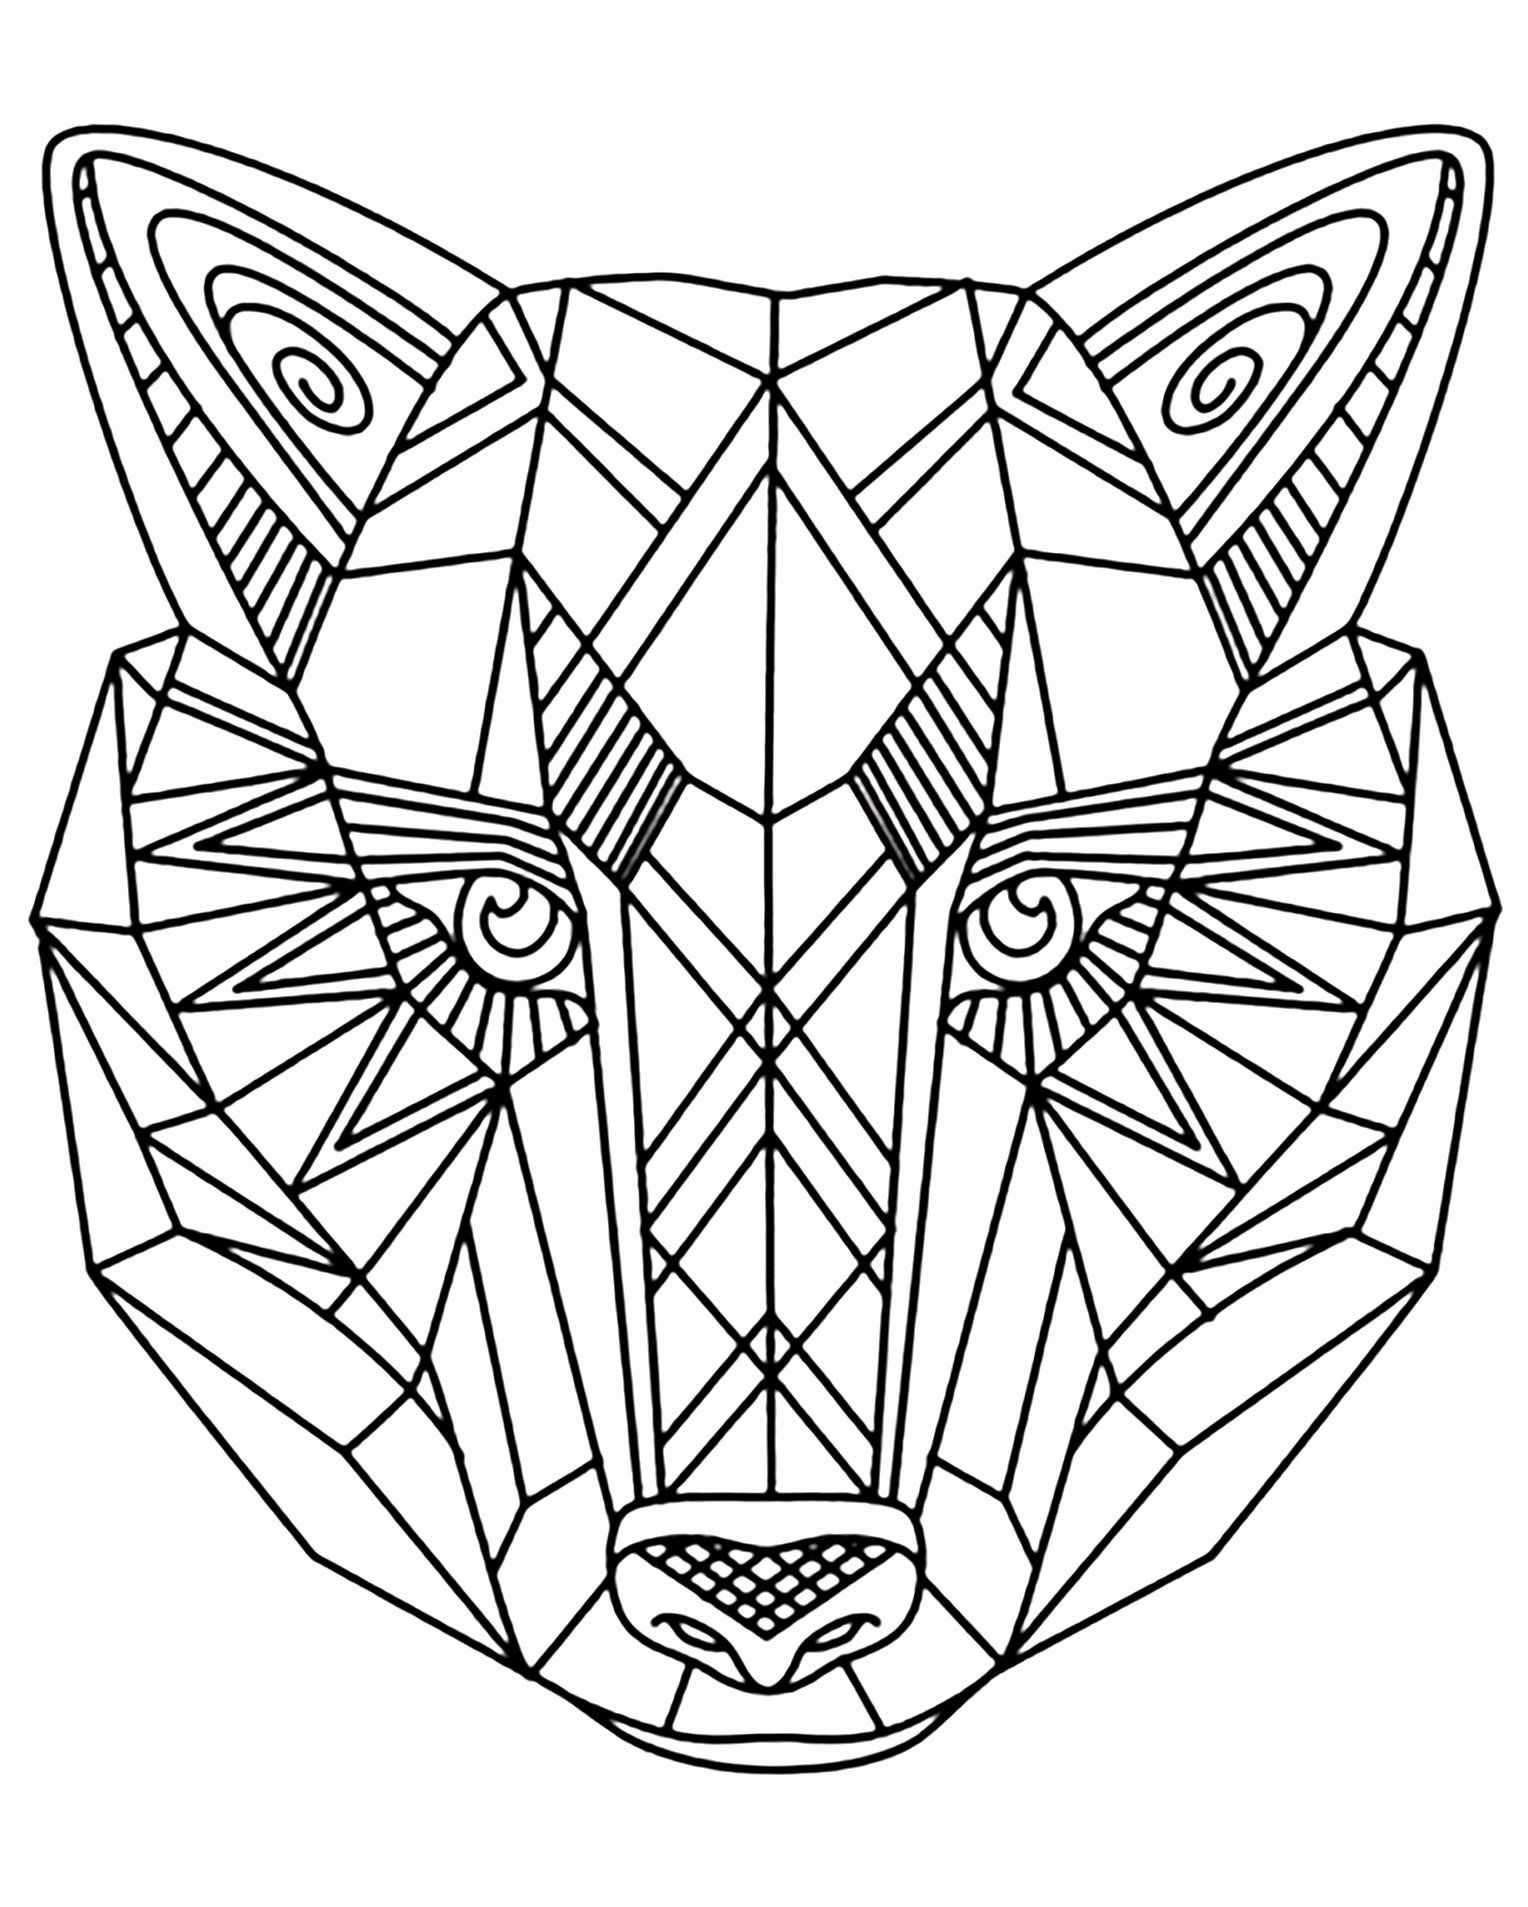 Coloring Book Pages Animals New Geometric Animal Coloring Pages In 2020 Geometric Coloring Pages Geometric Wolf Pattern Coloring Pages